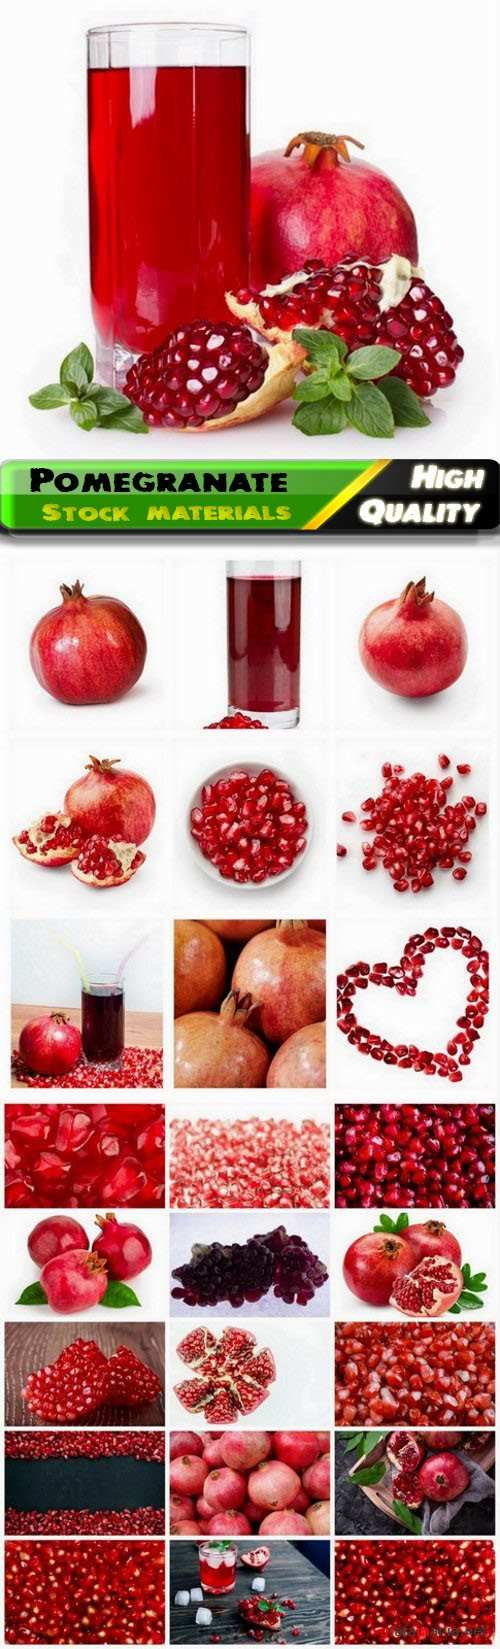 Fruit garnet and pomegranate with red berries and seeds 25 HQ Jpg